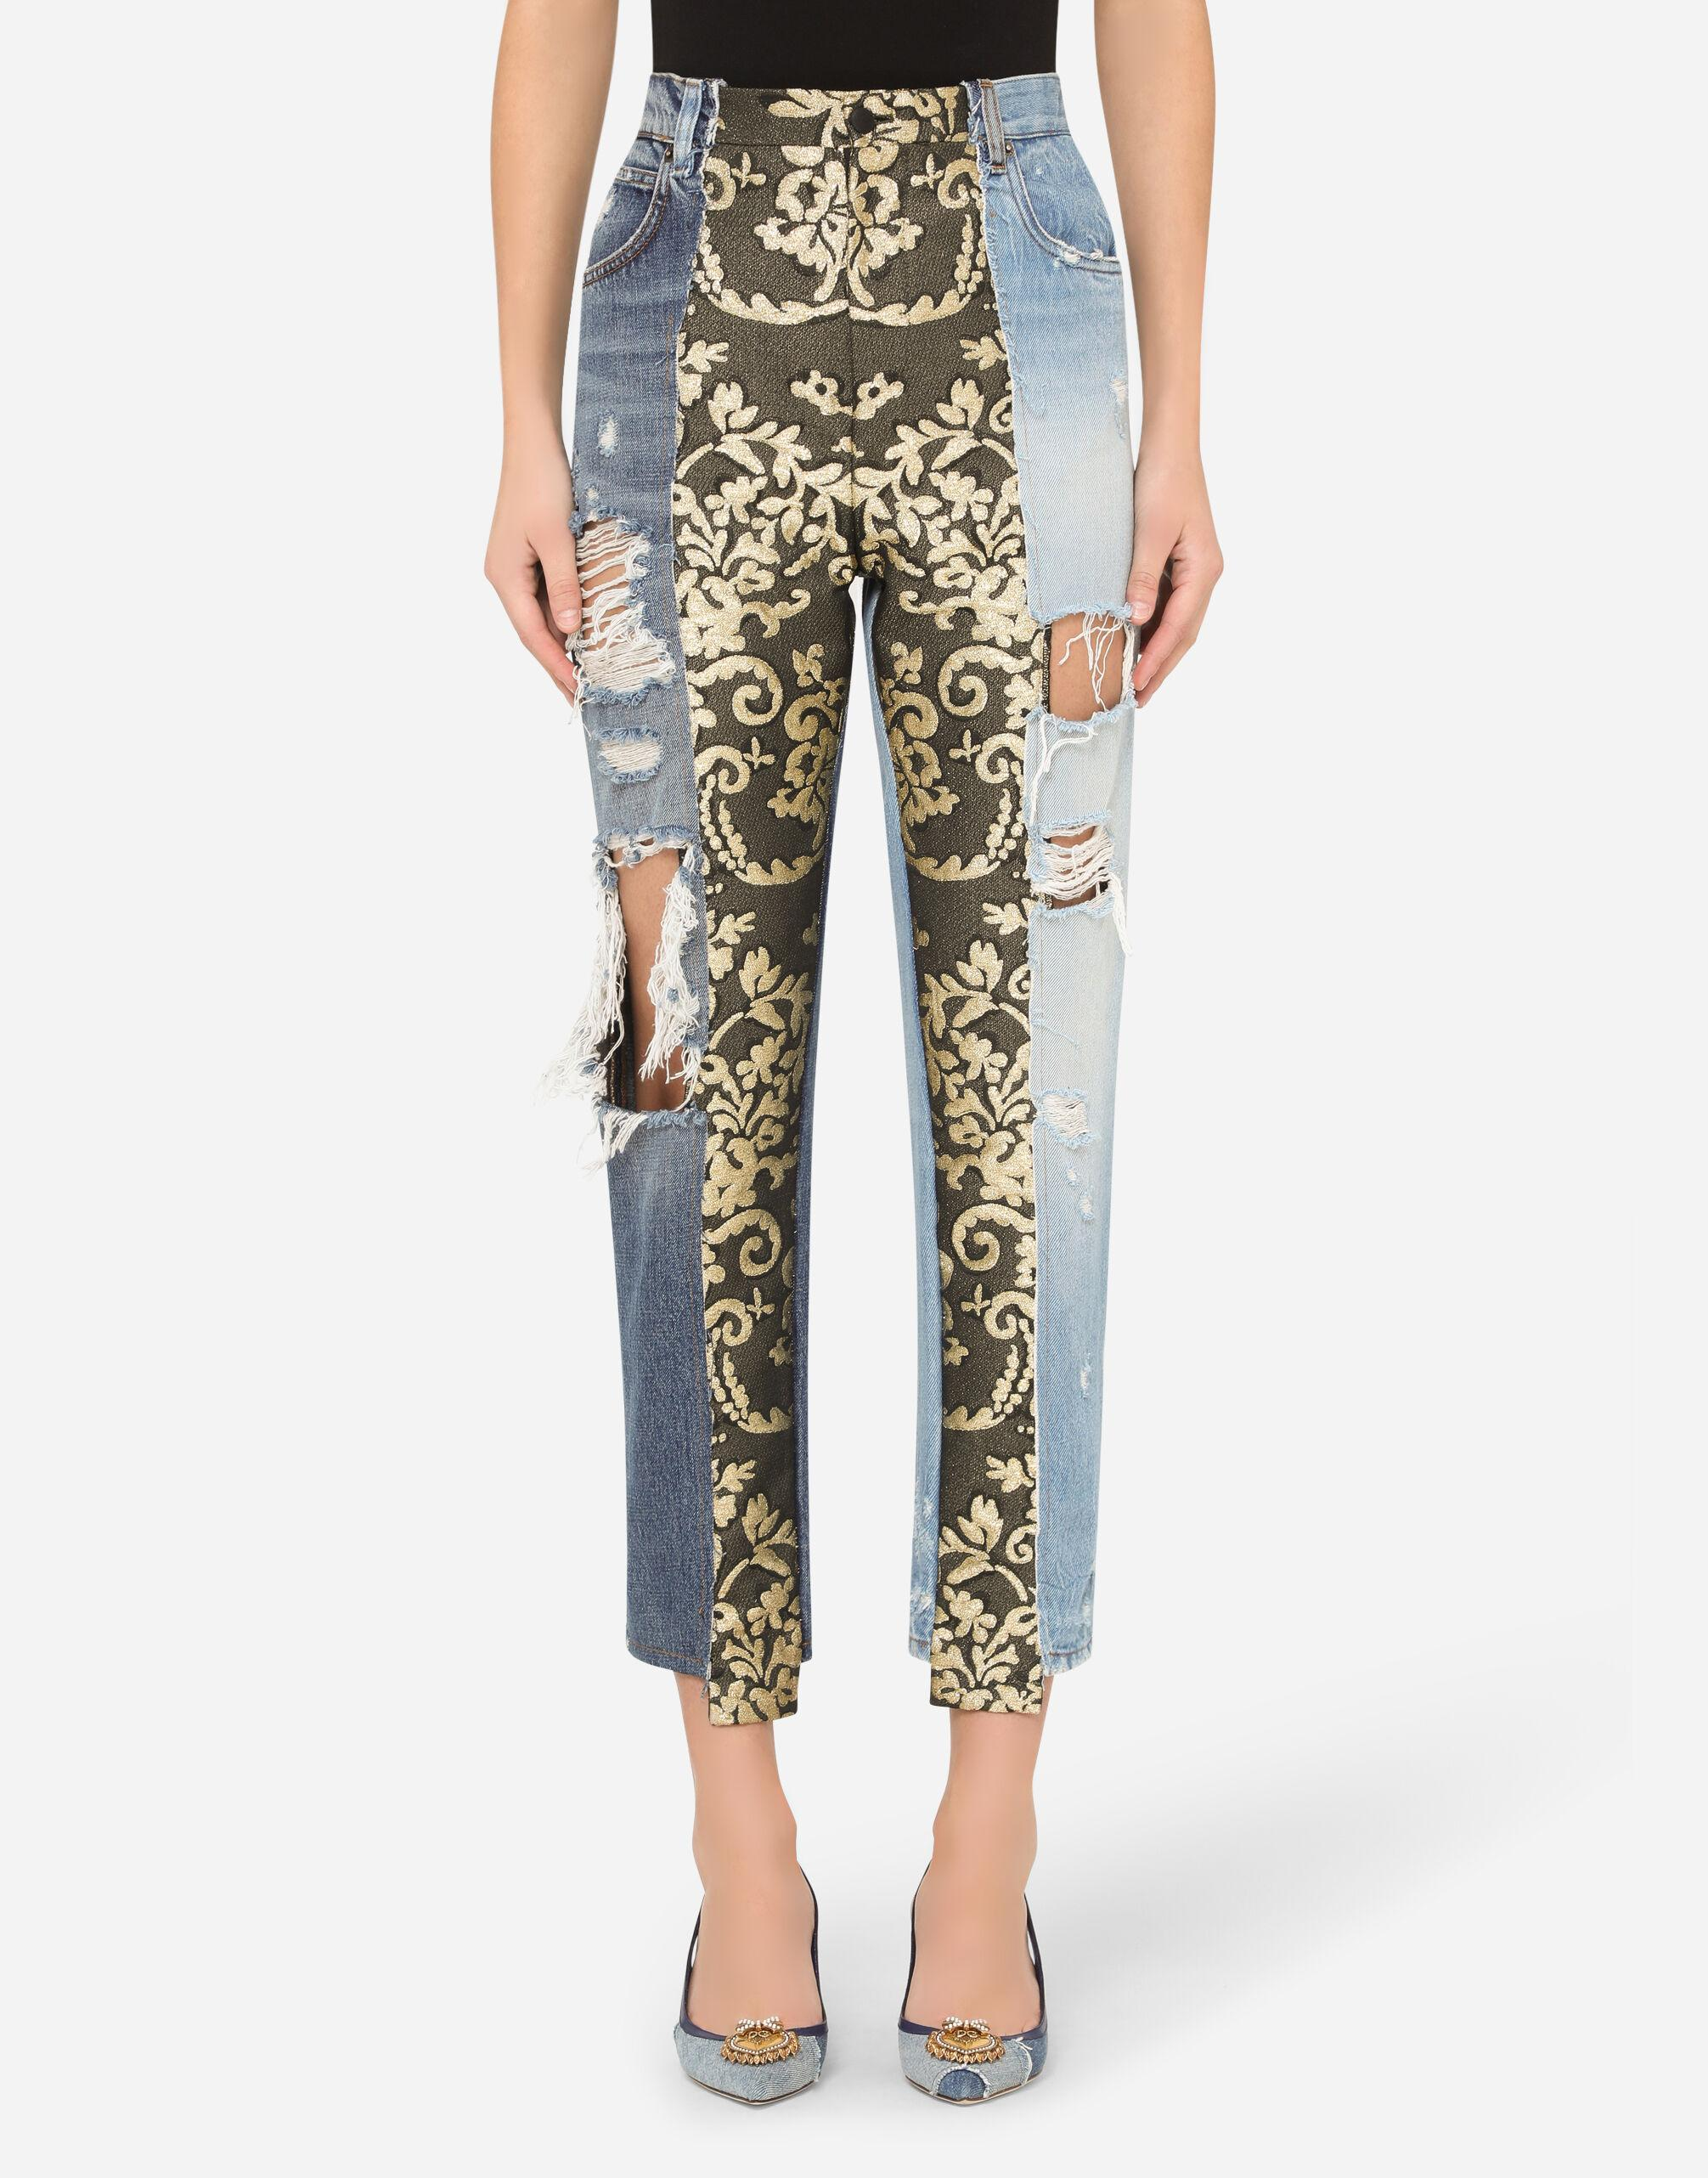 High-waisted jacquard and denim jeans